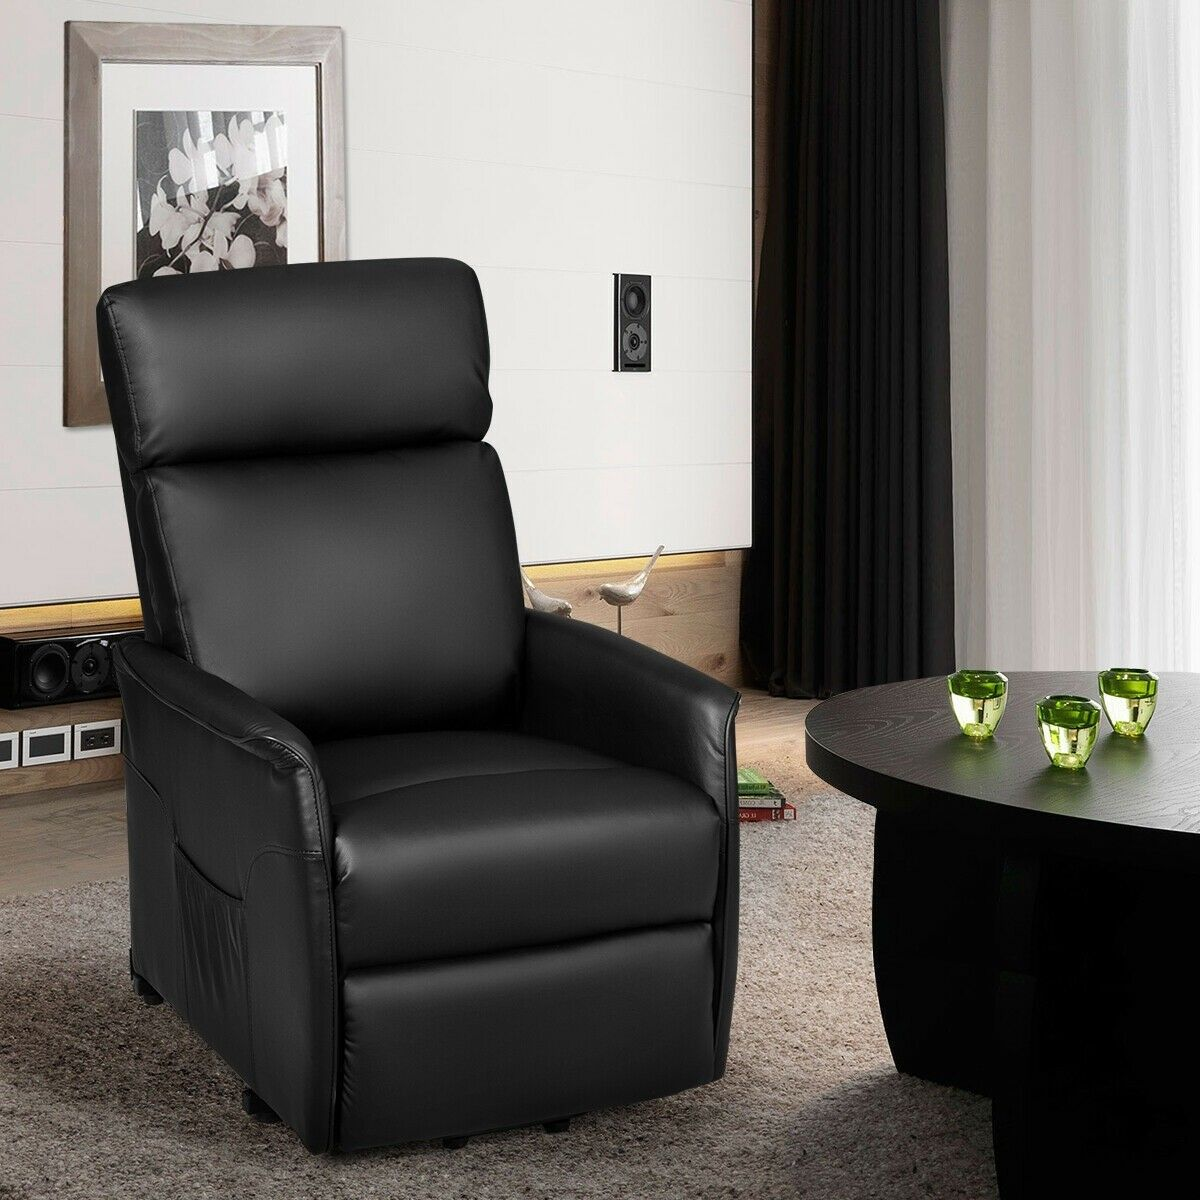 Electric Power Lift Recliner Chair With Remote Control Lift Recliners Chair Recliner